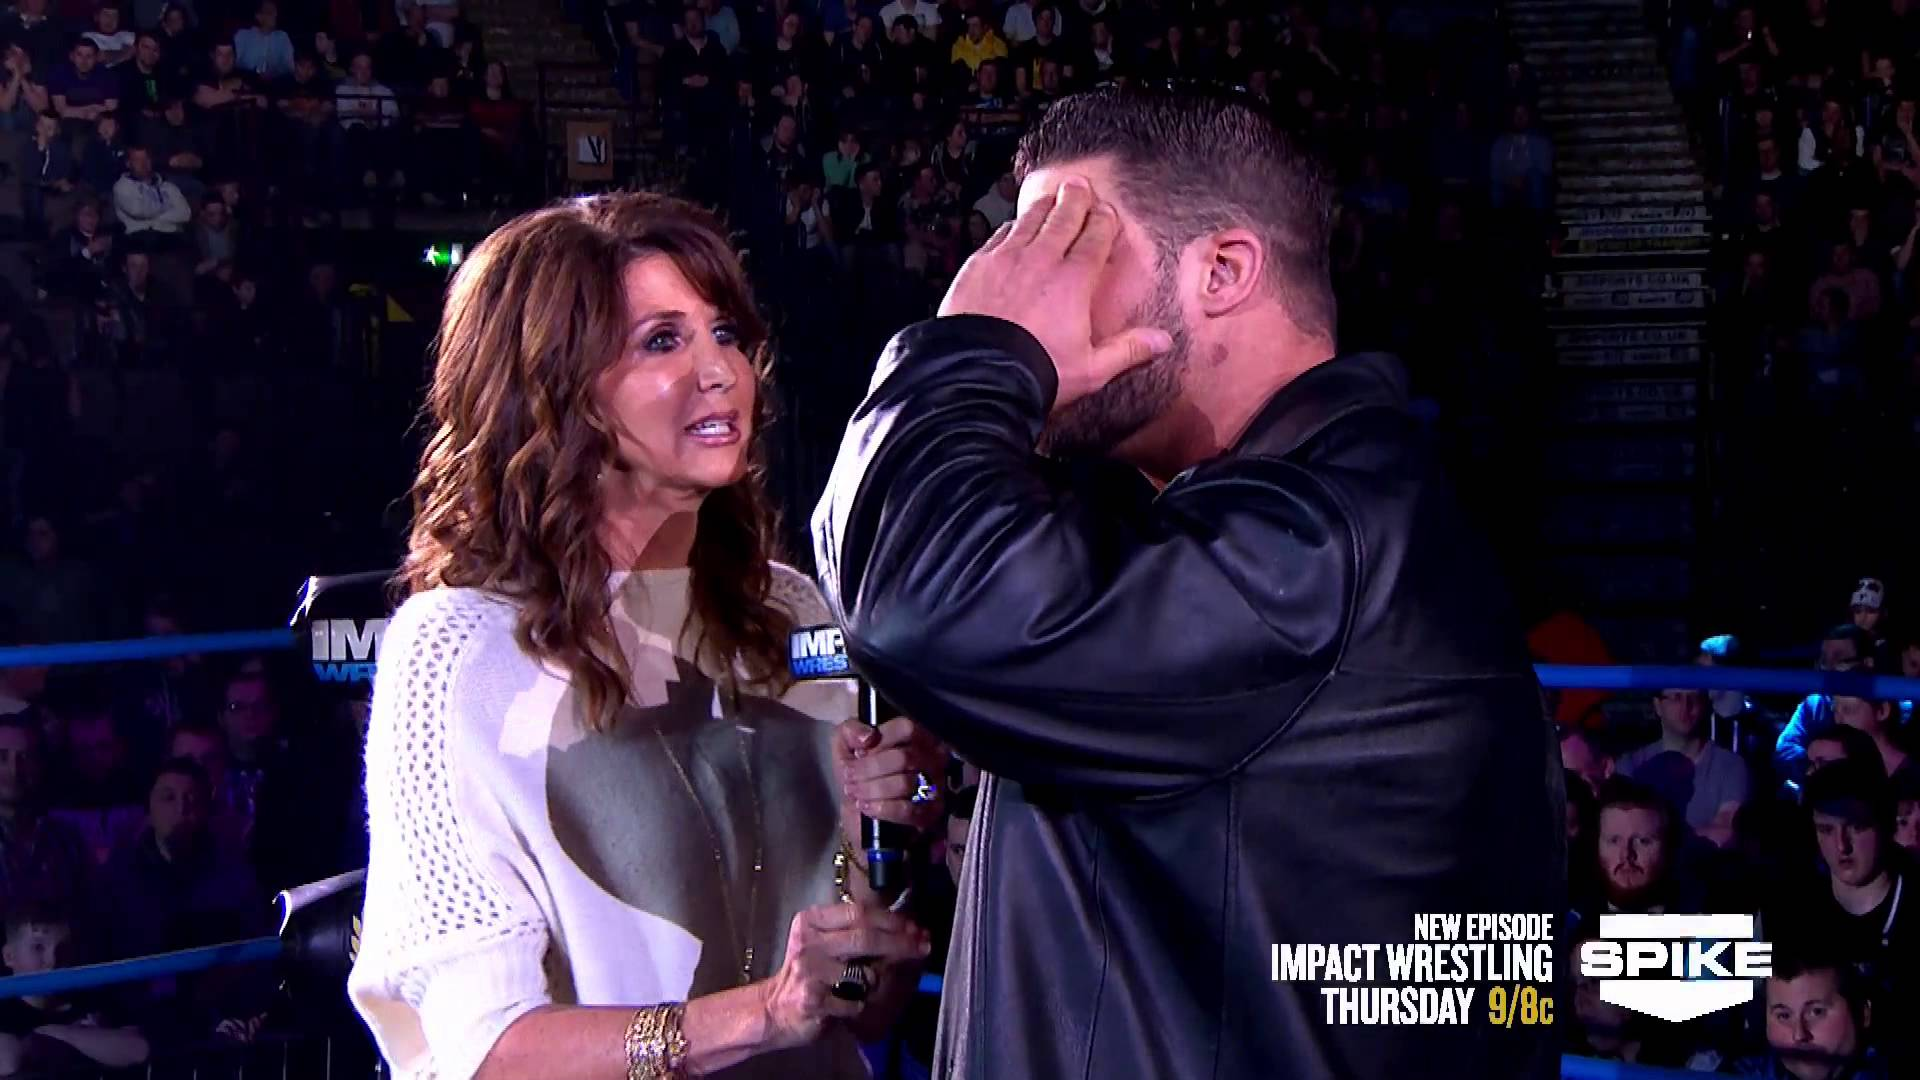 The Opening To Thursday's IMPACT WRESTLING on SpikeTV